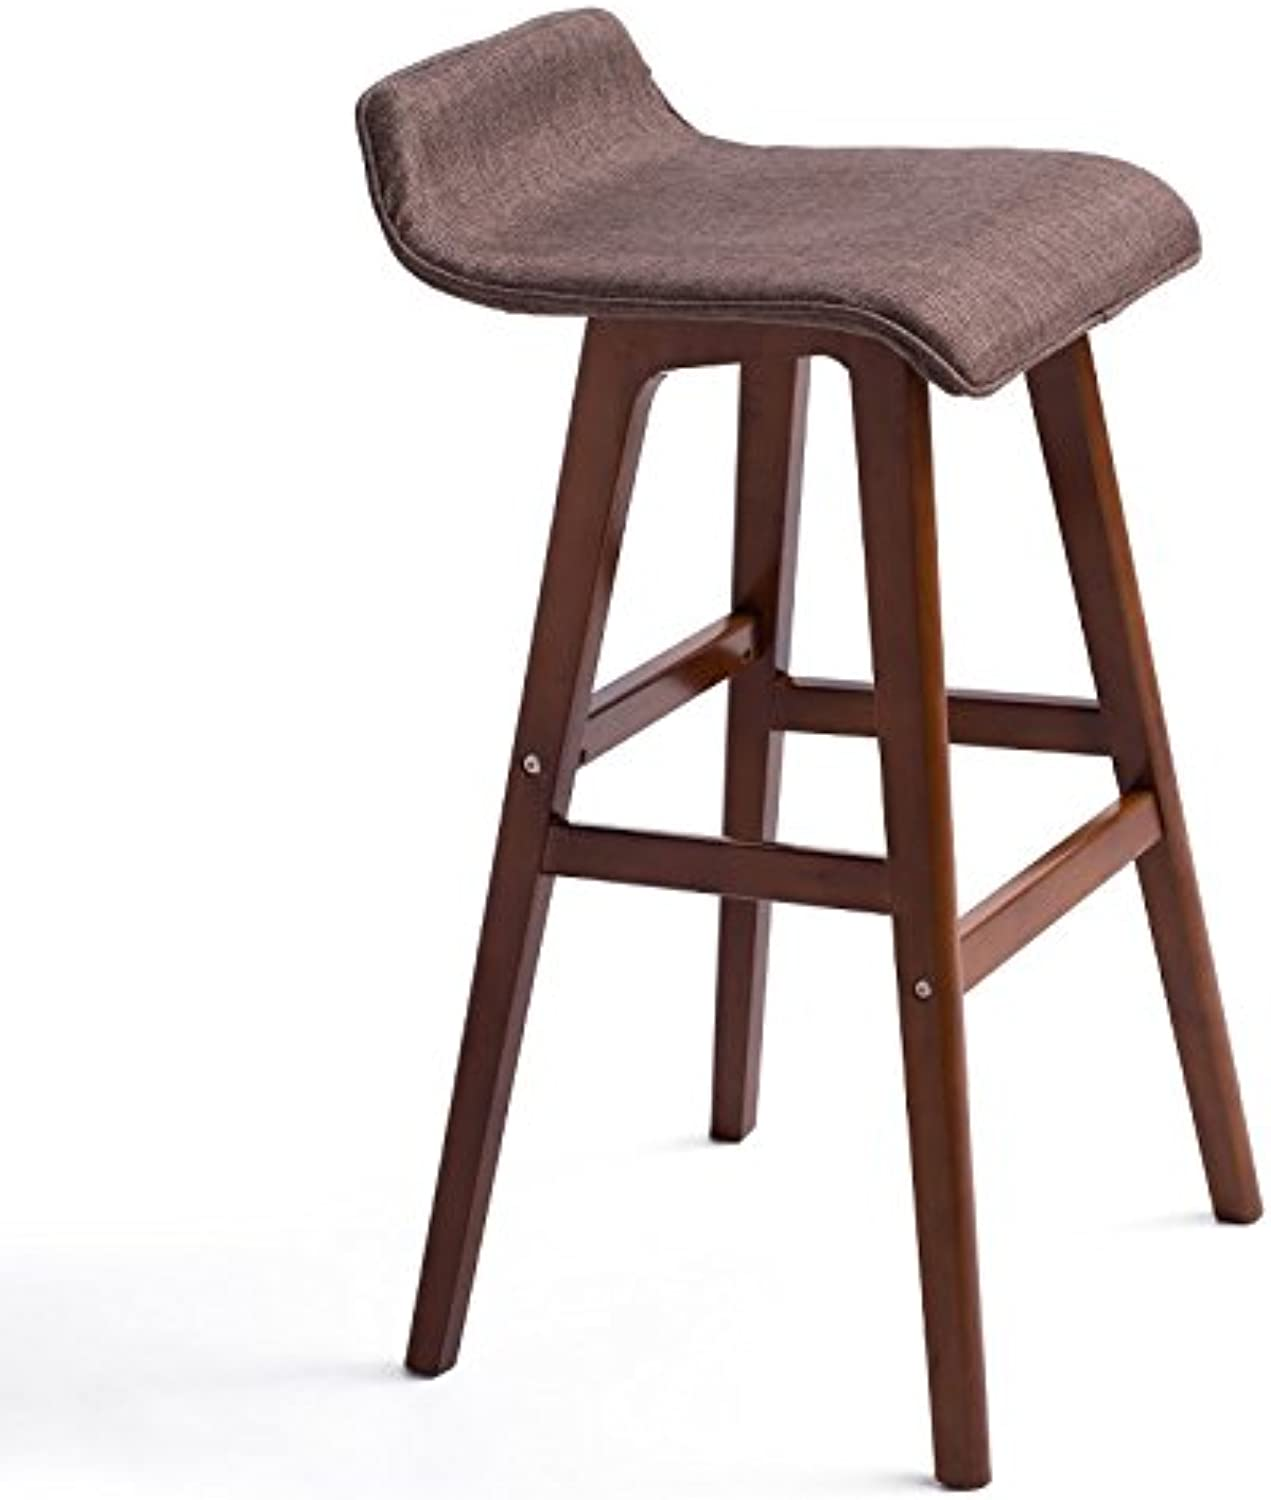 MEIDUO Chairs Bar Stool and Wooden Frame Comfortable Backrest & Footrest Brown 2 Sizes (color   B, Size   404065cm)